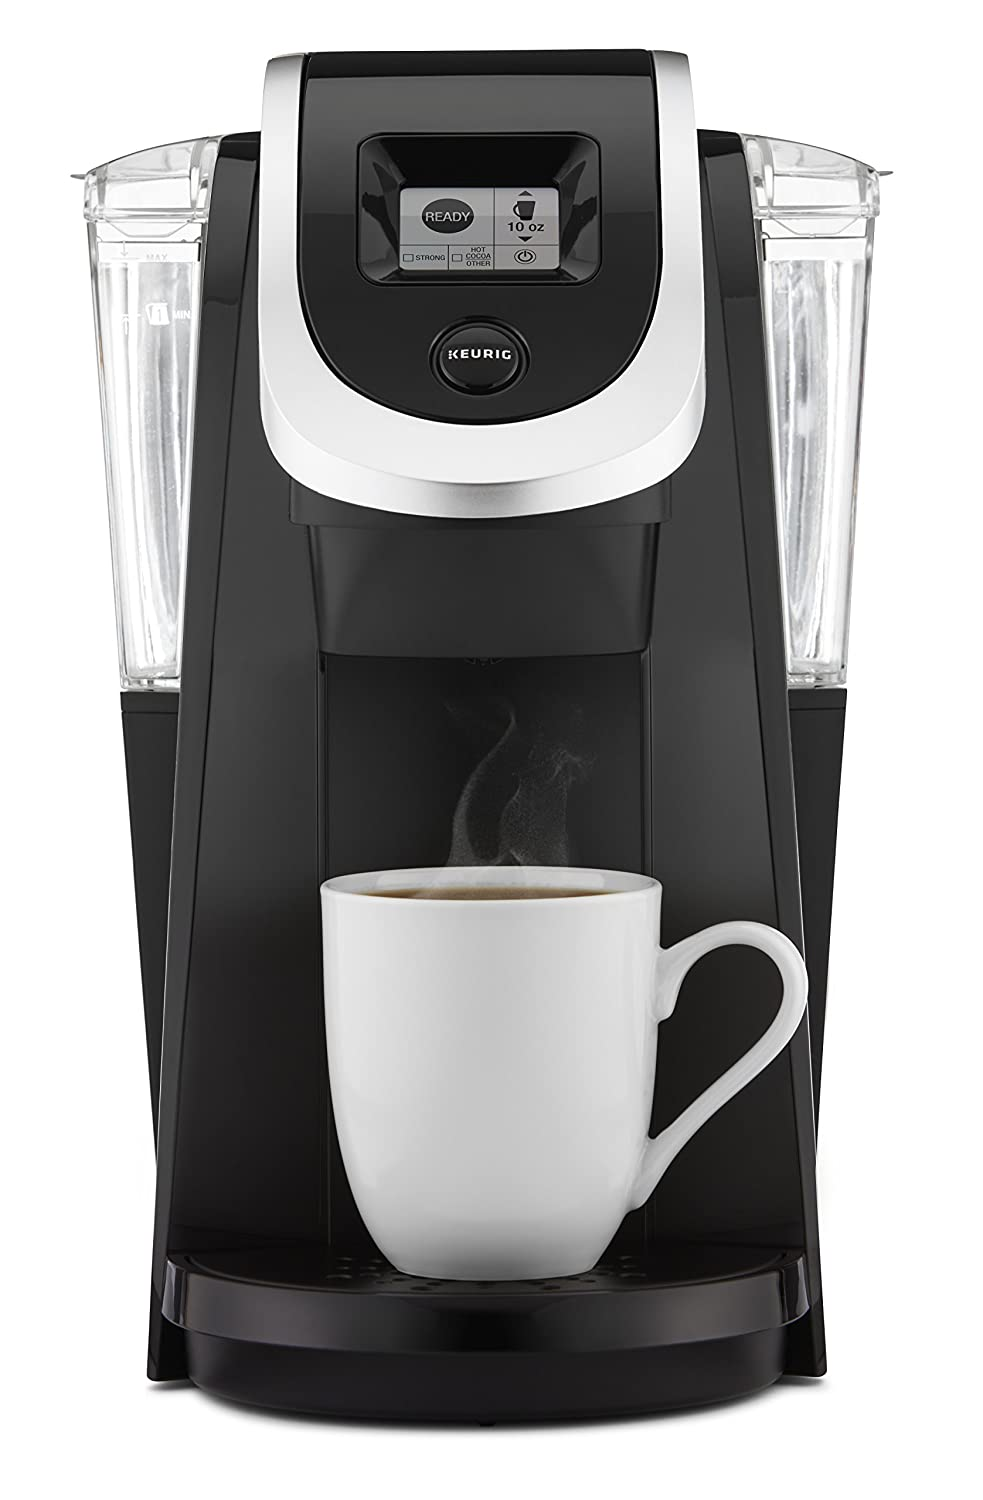 Keurig 2.0 Series K250 Coffee Maker